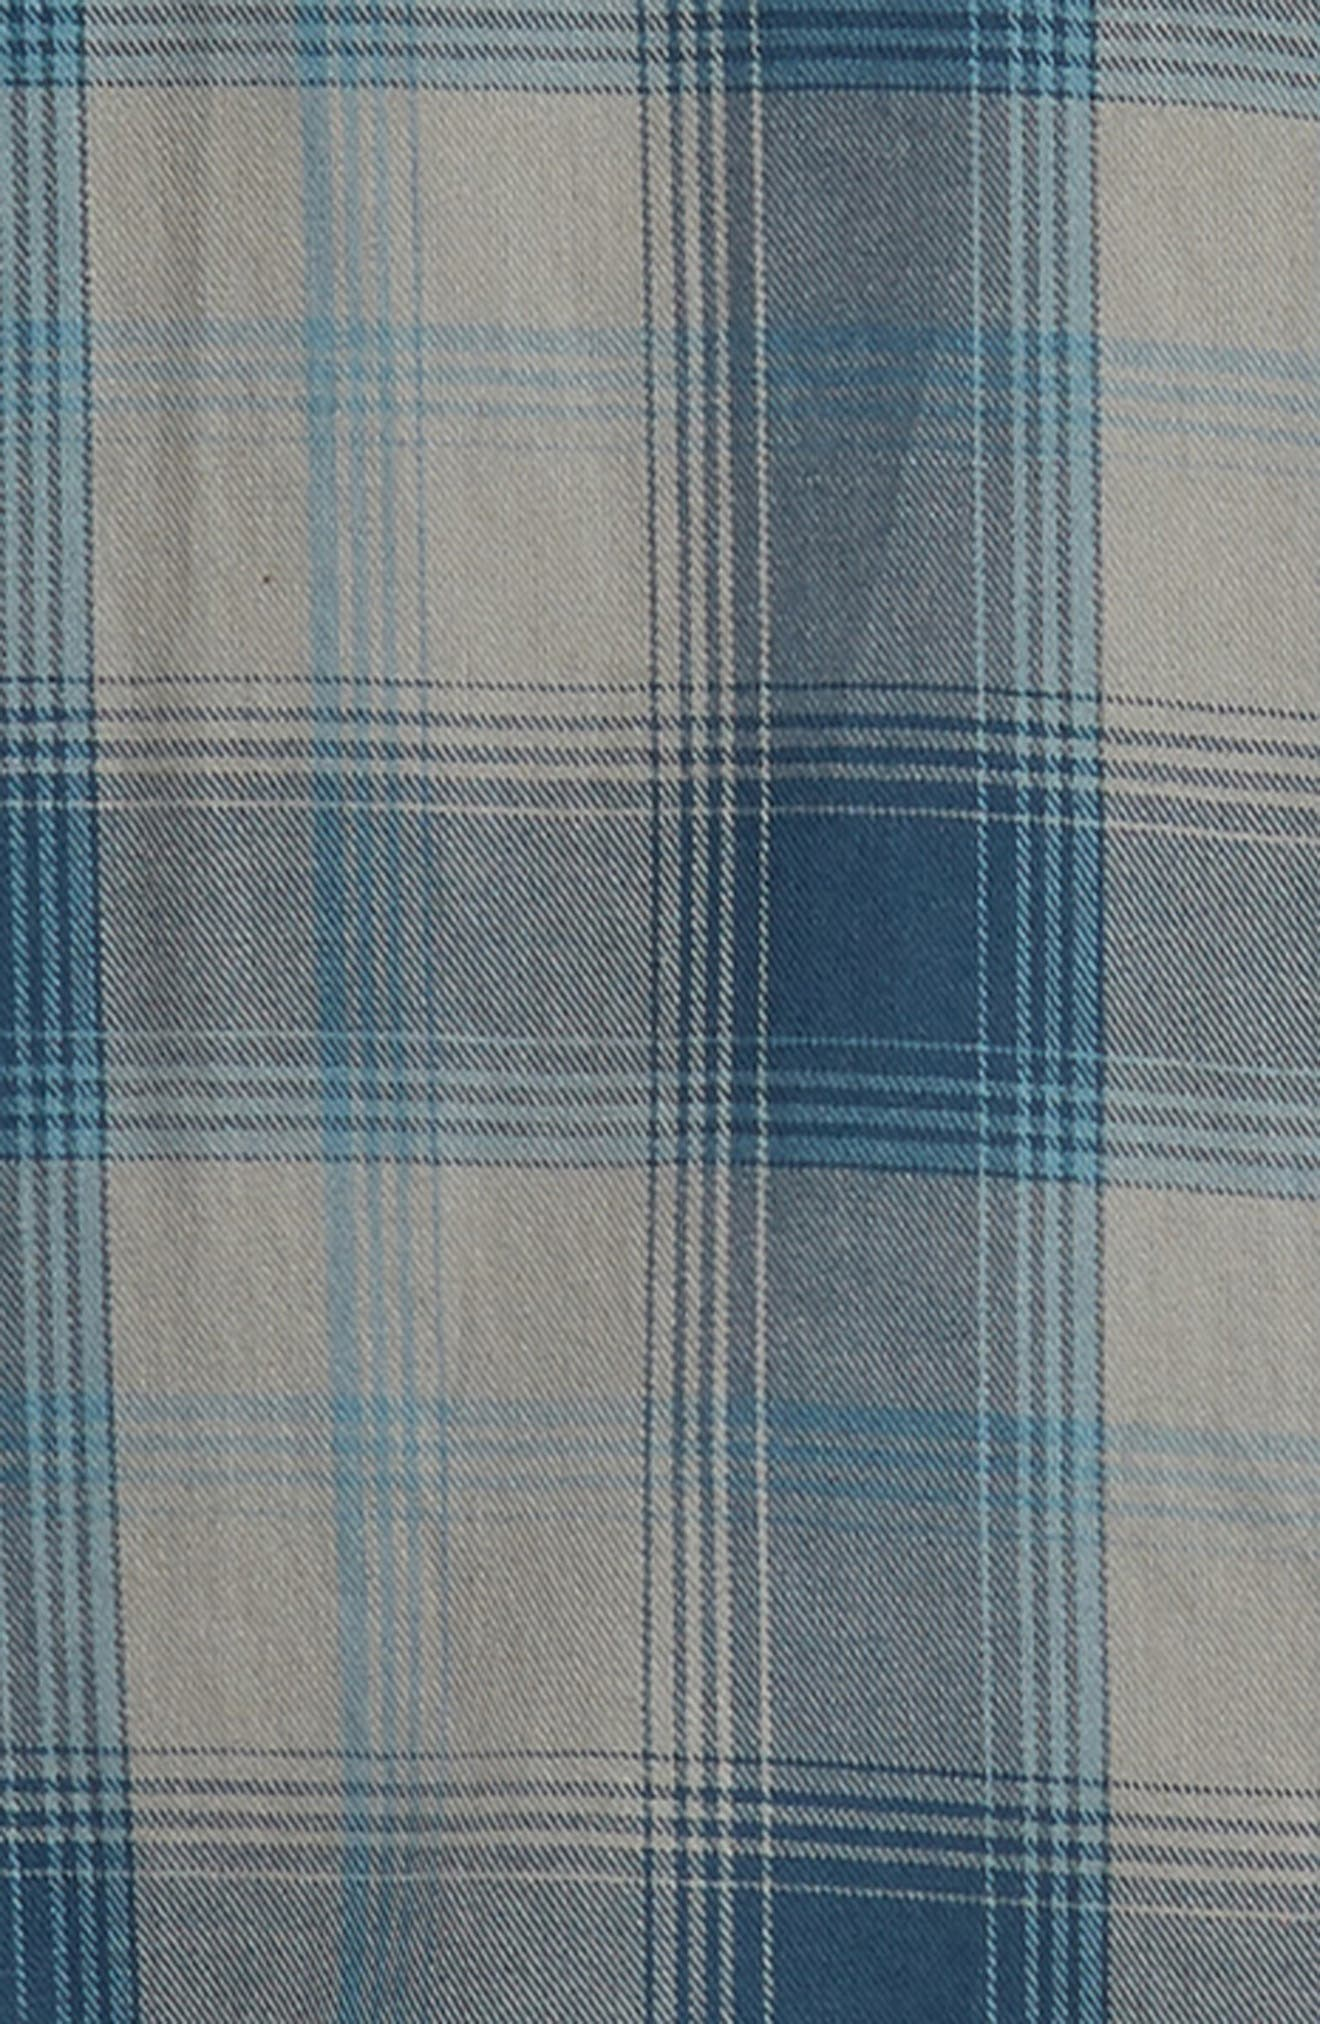 Insider Regular Fit Plaid Flannel Sport Shirt,                             Alternate thumbnail 6, color,                             BLUE WING TEAL